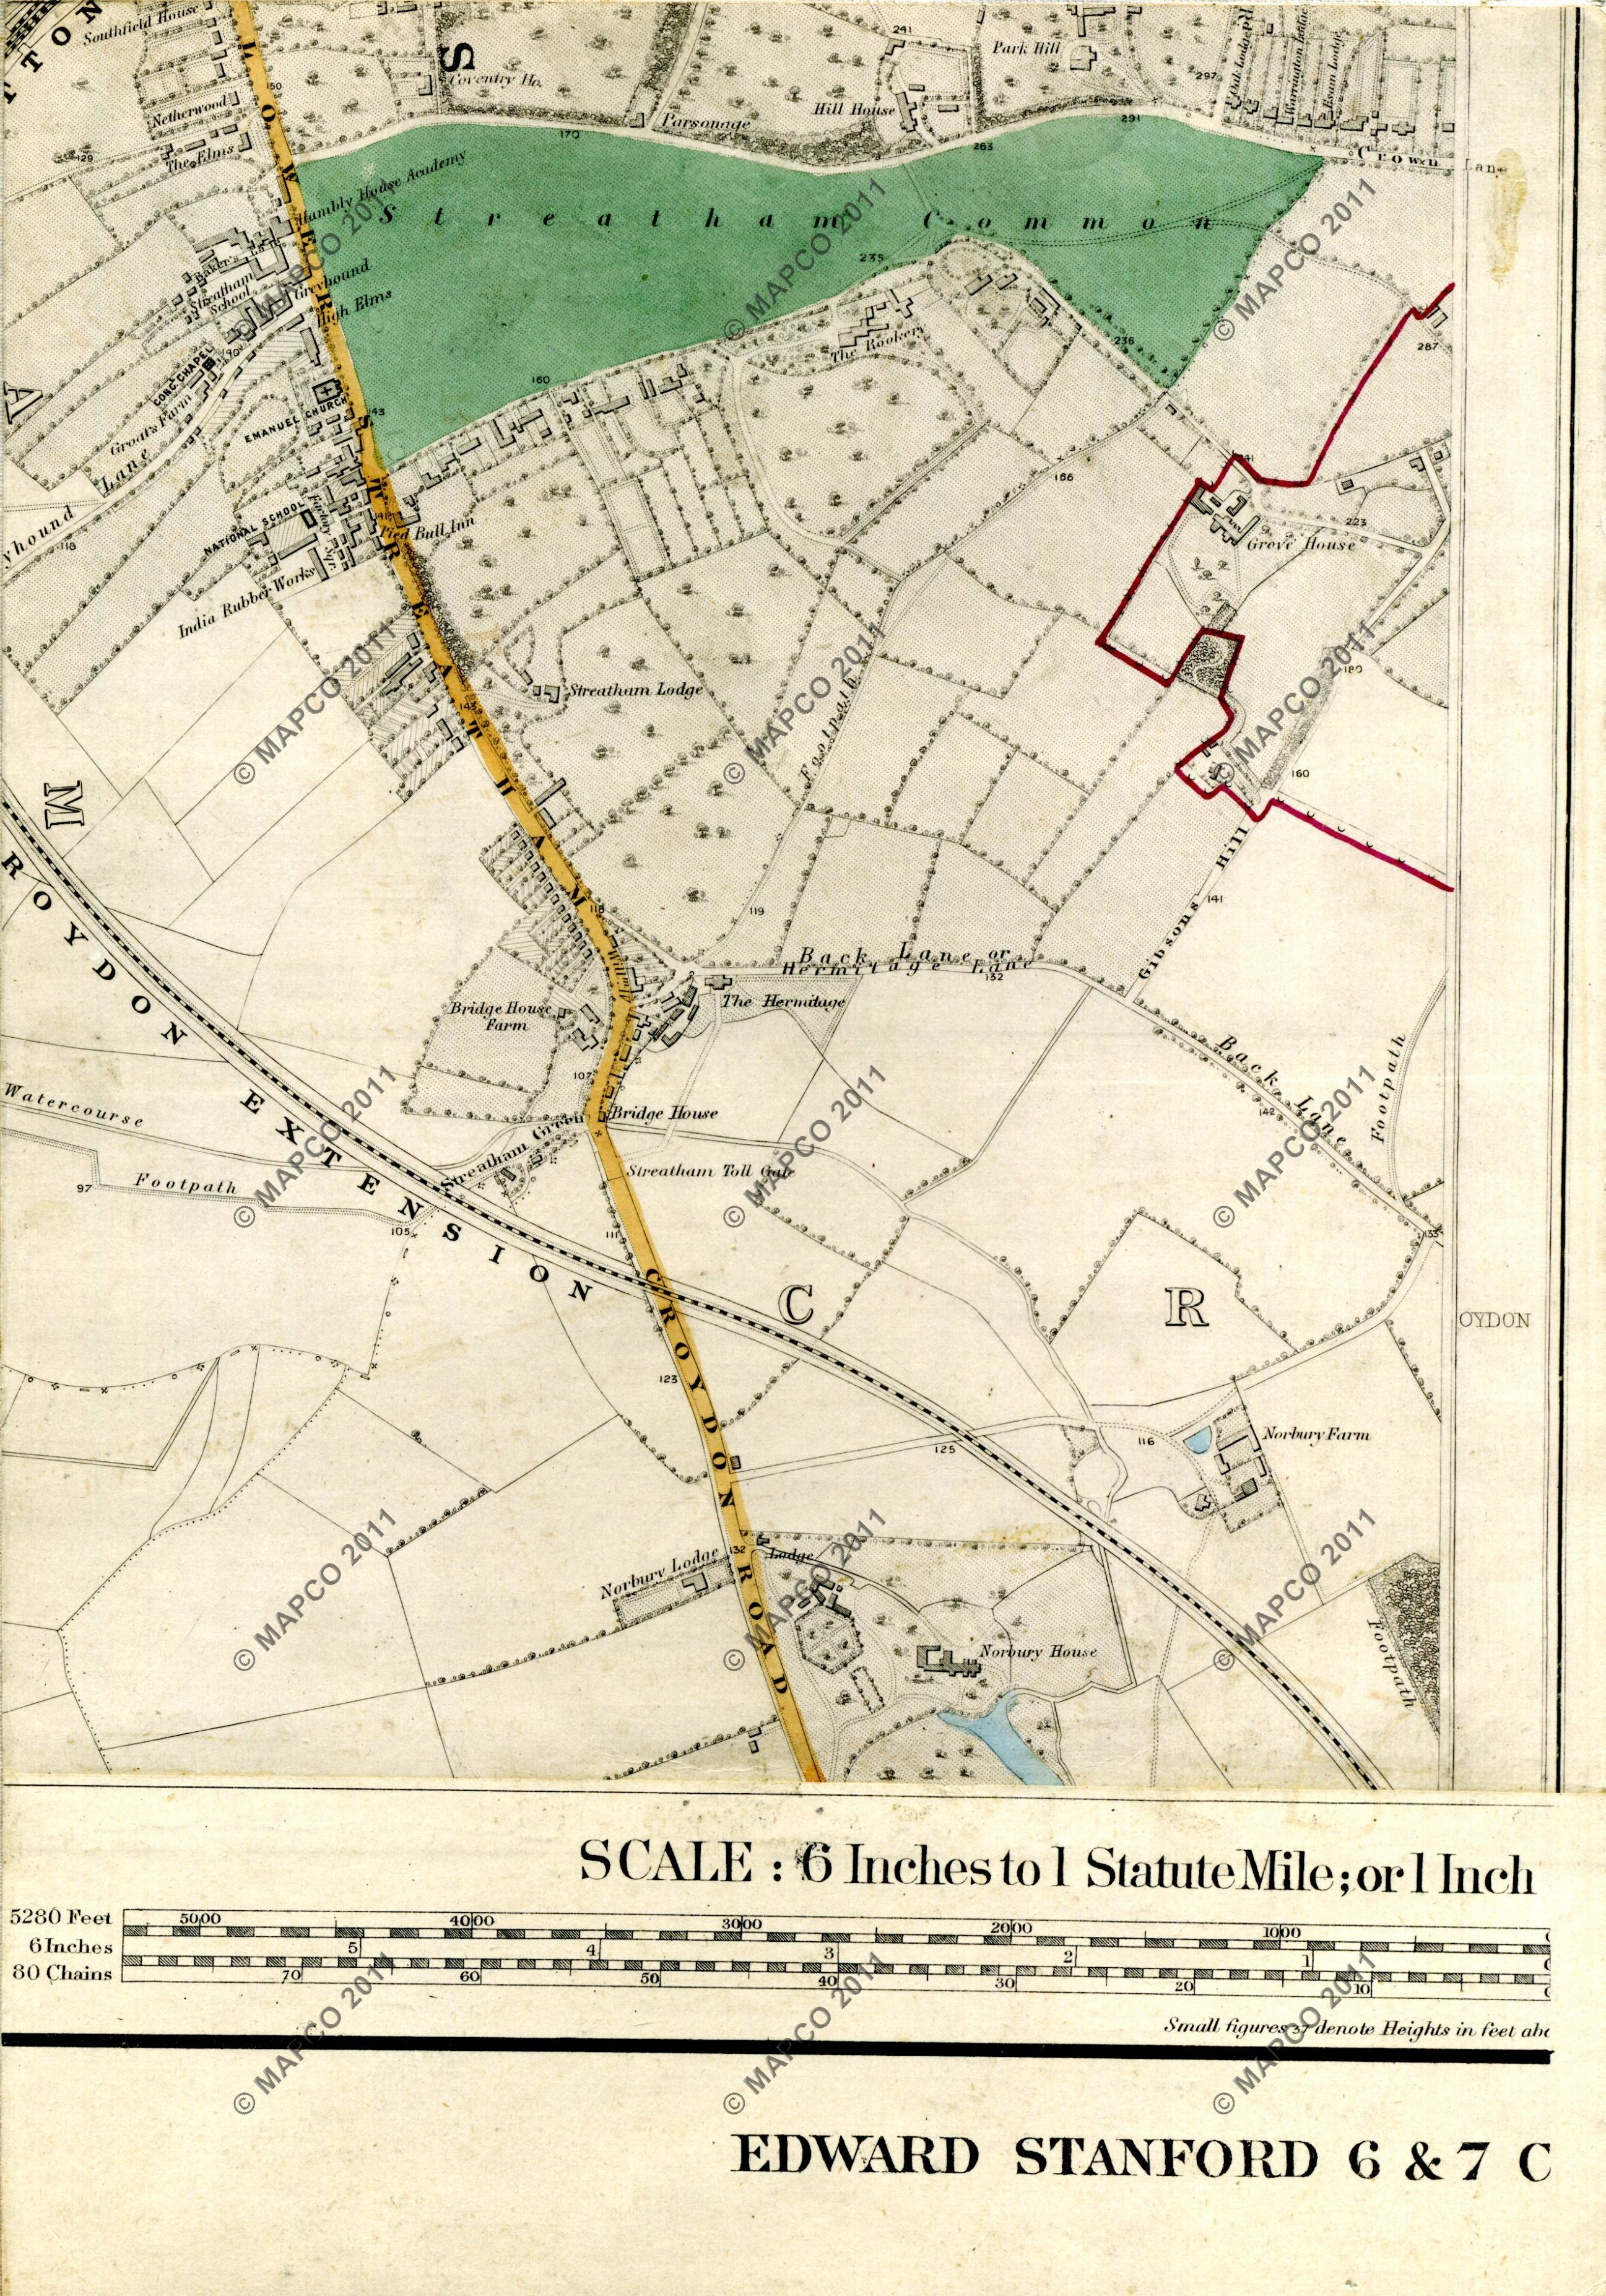 Return To Previous Map Image